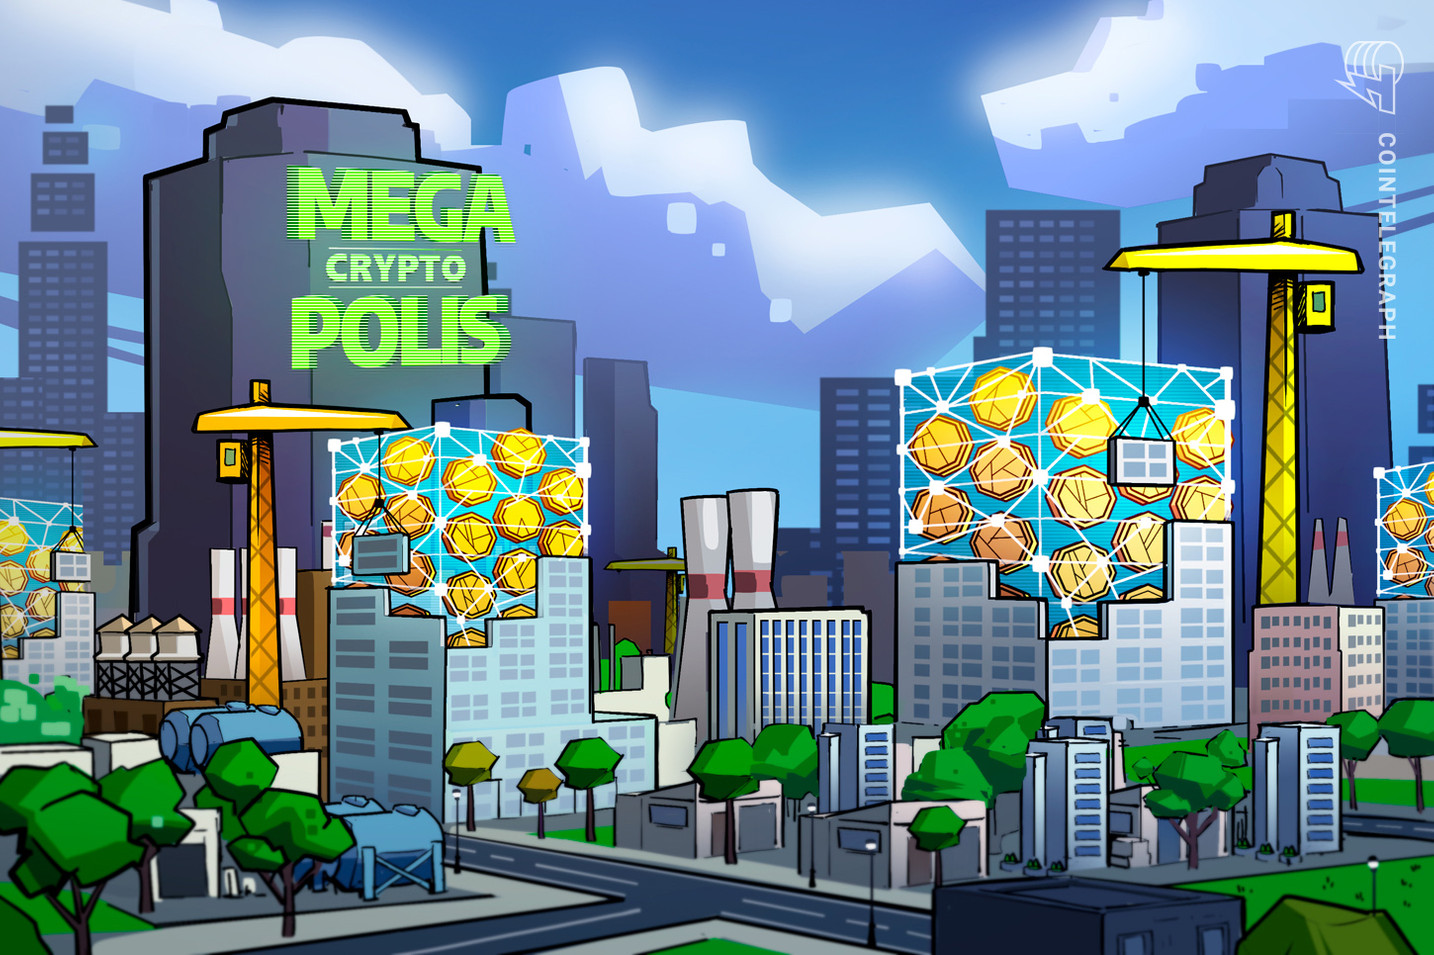 NFTs at the heart of major upgrade for decentralized virtual city